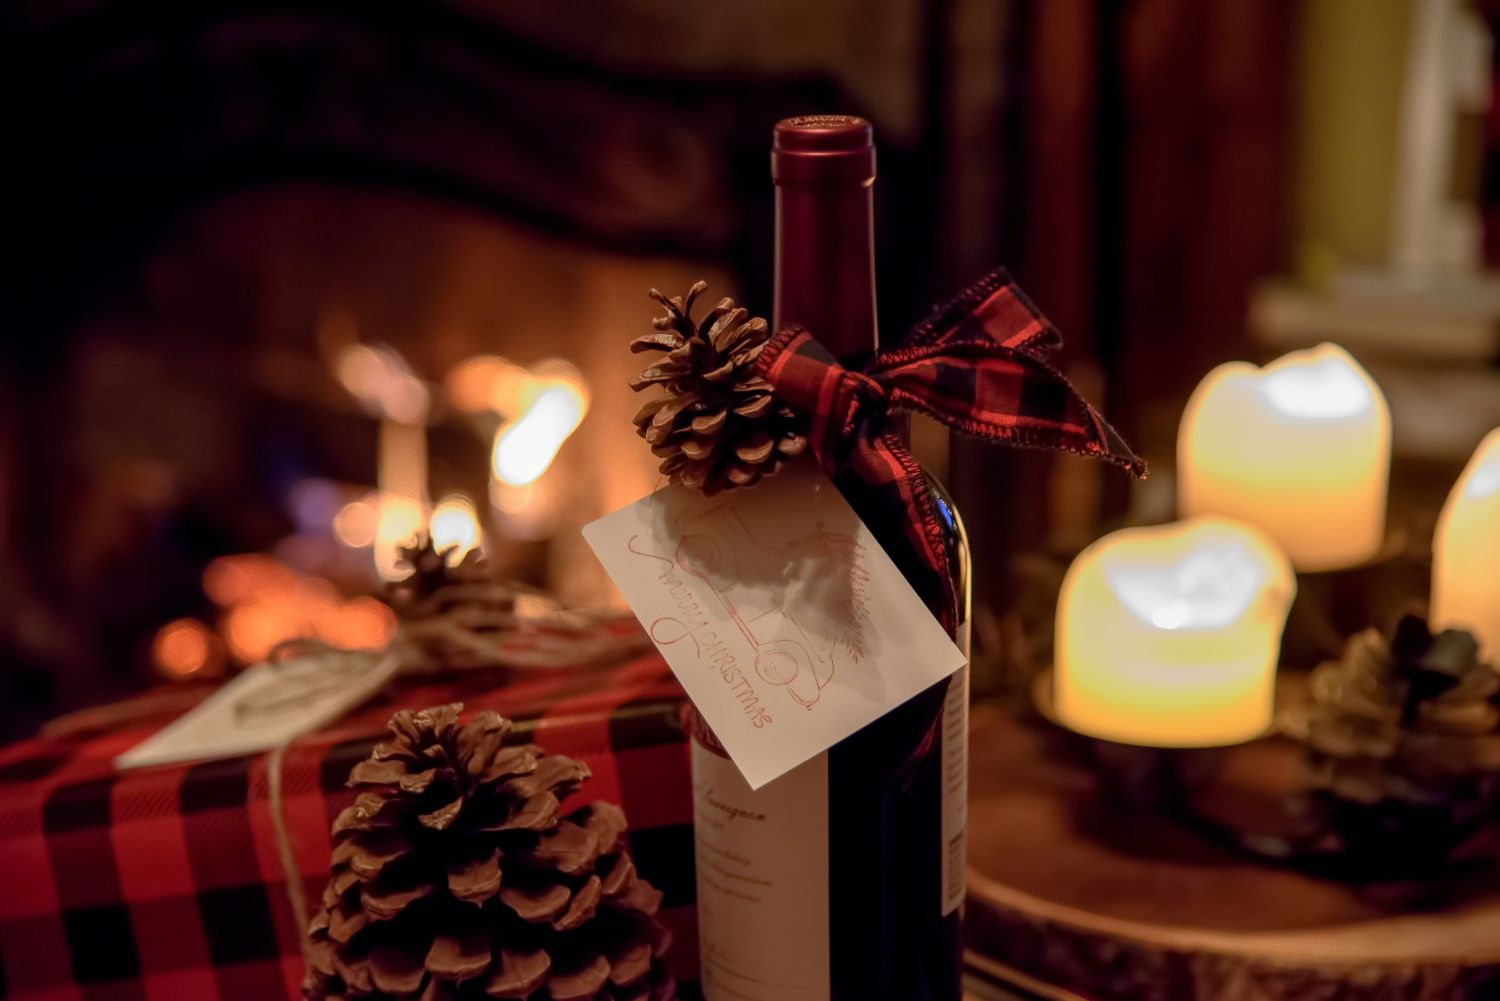 Wine gift wrapped for holidays near cozy fireplace